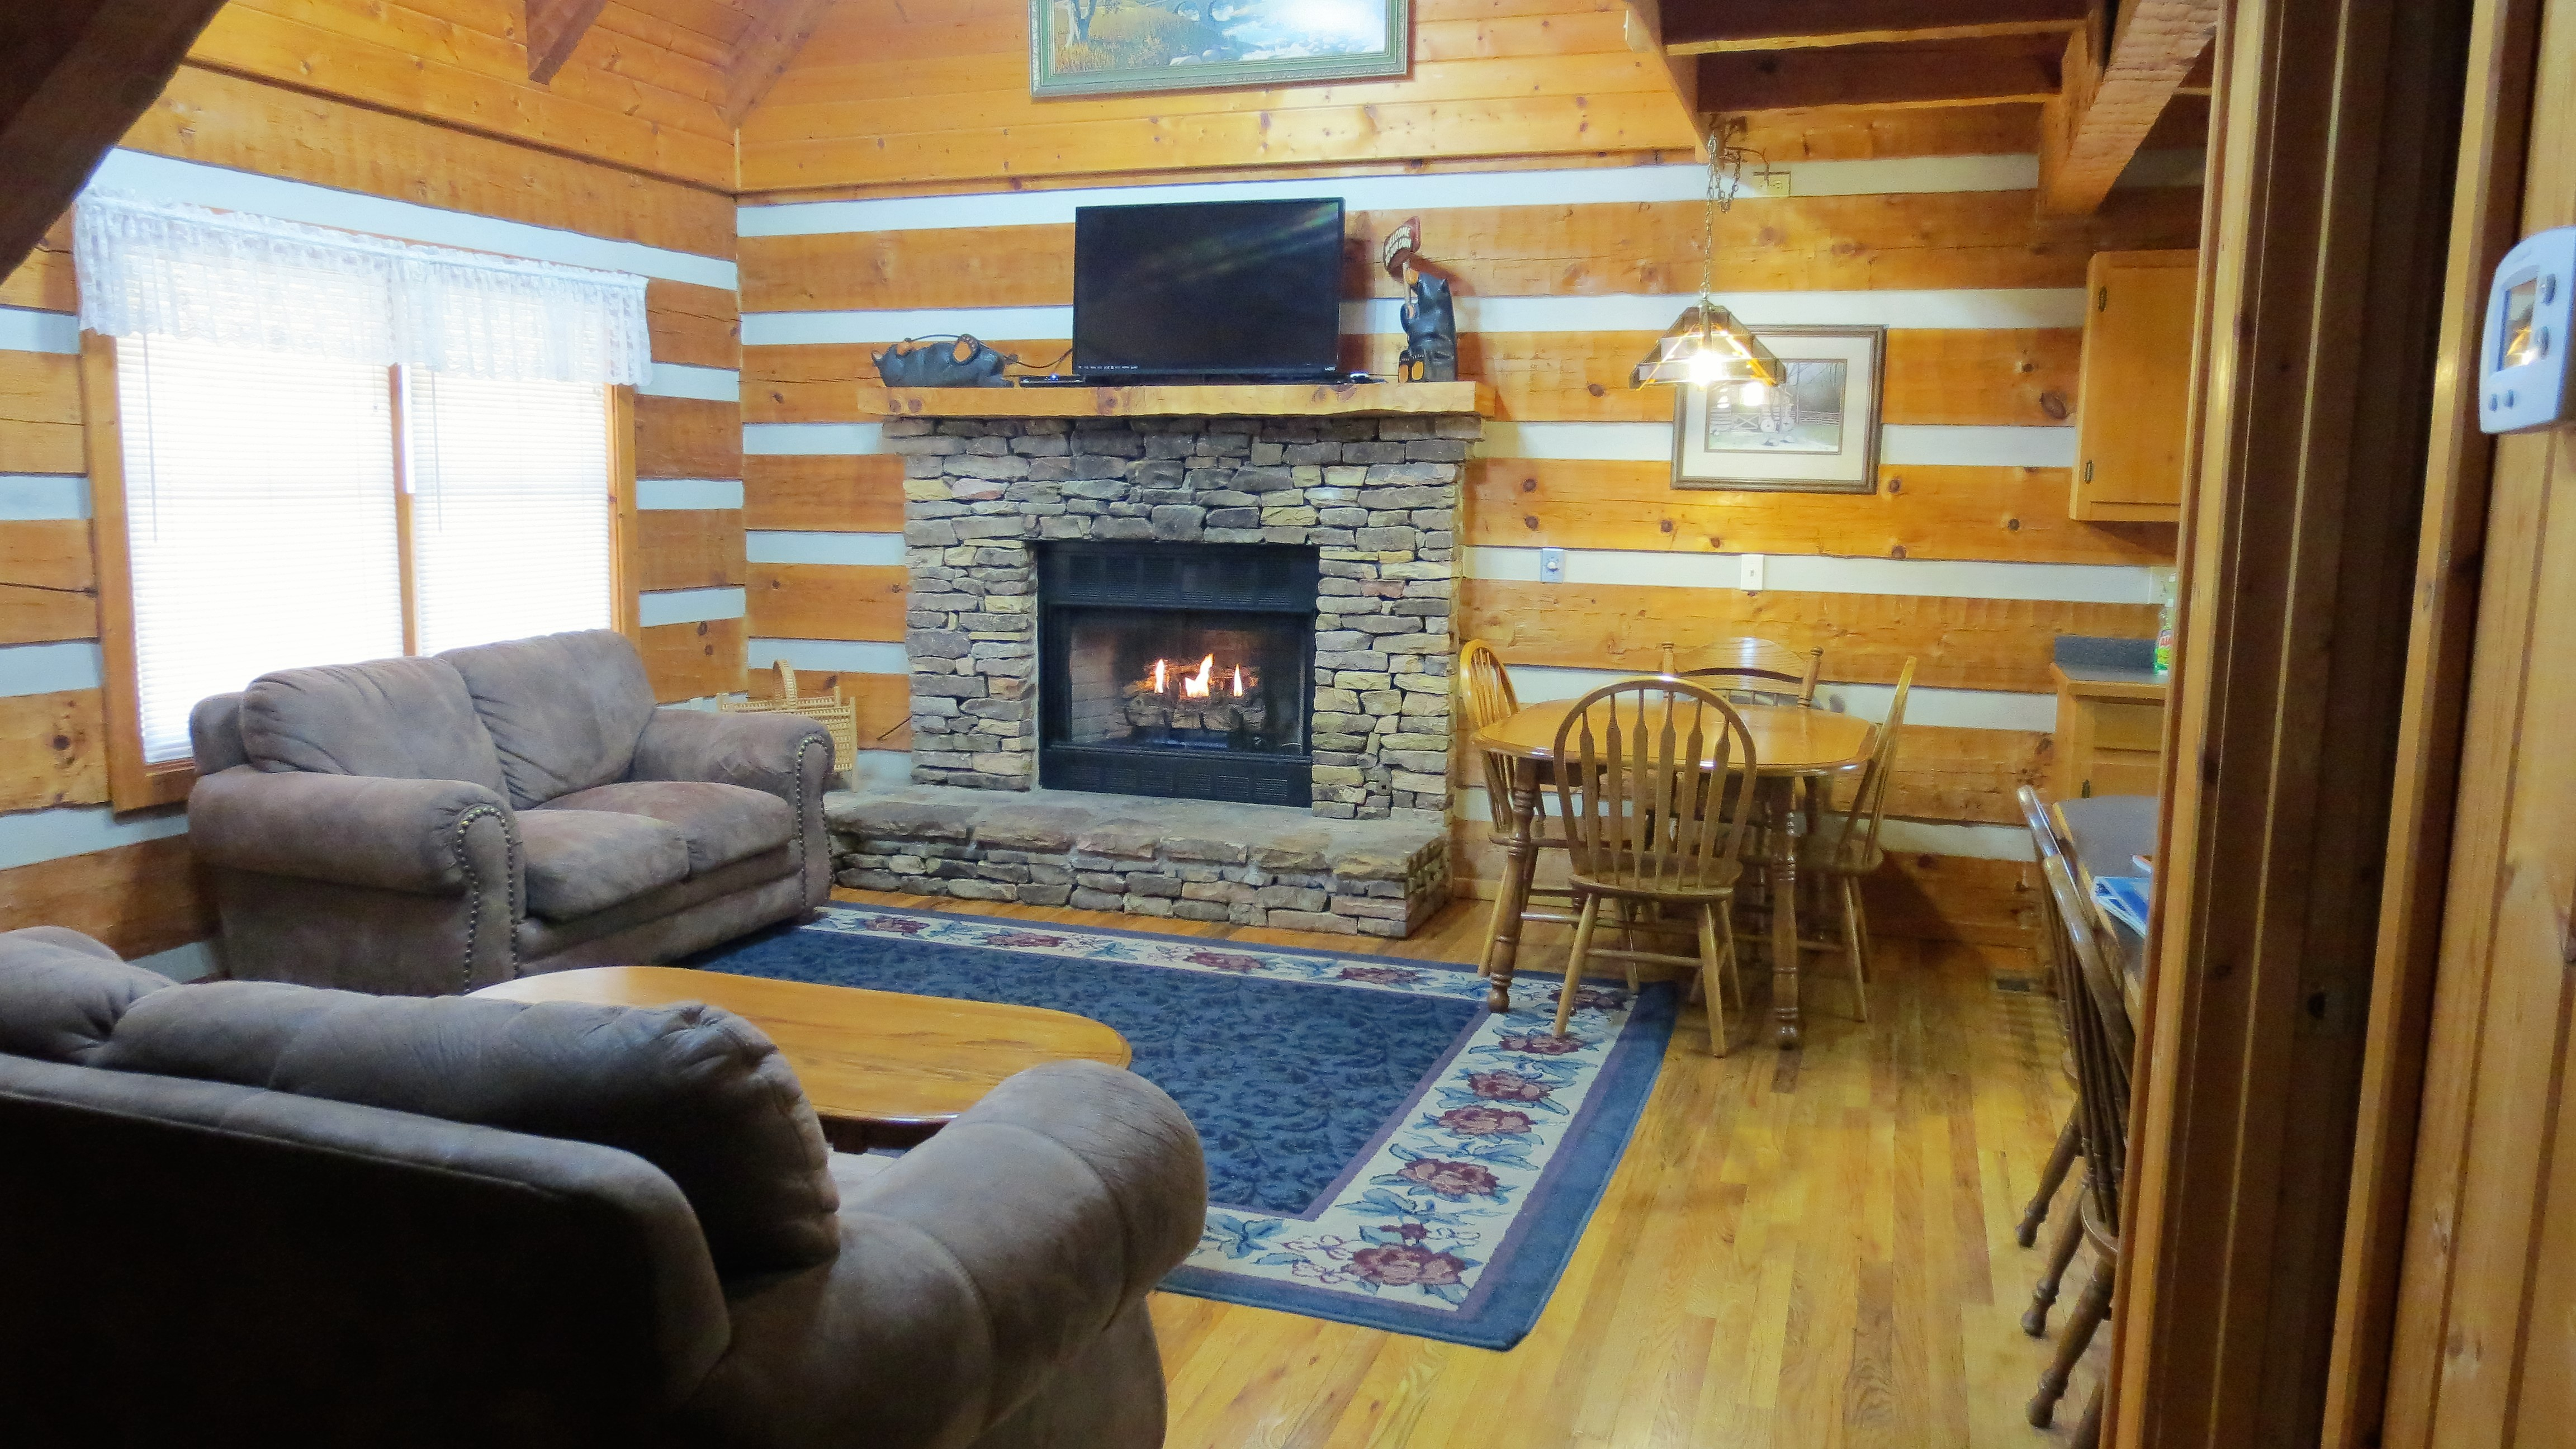 2 Gone Fishin 3 bedroom log cabin in Gatlinburg TN with gas fireplace